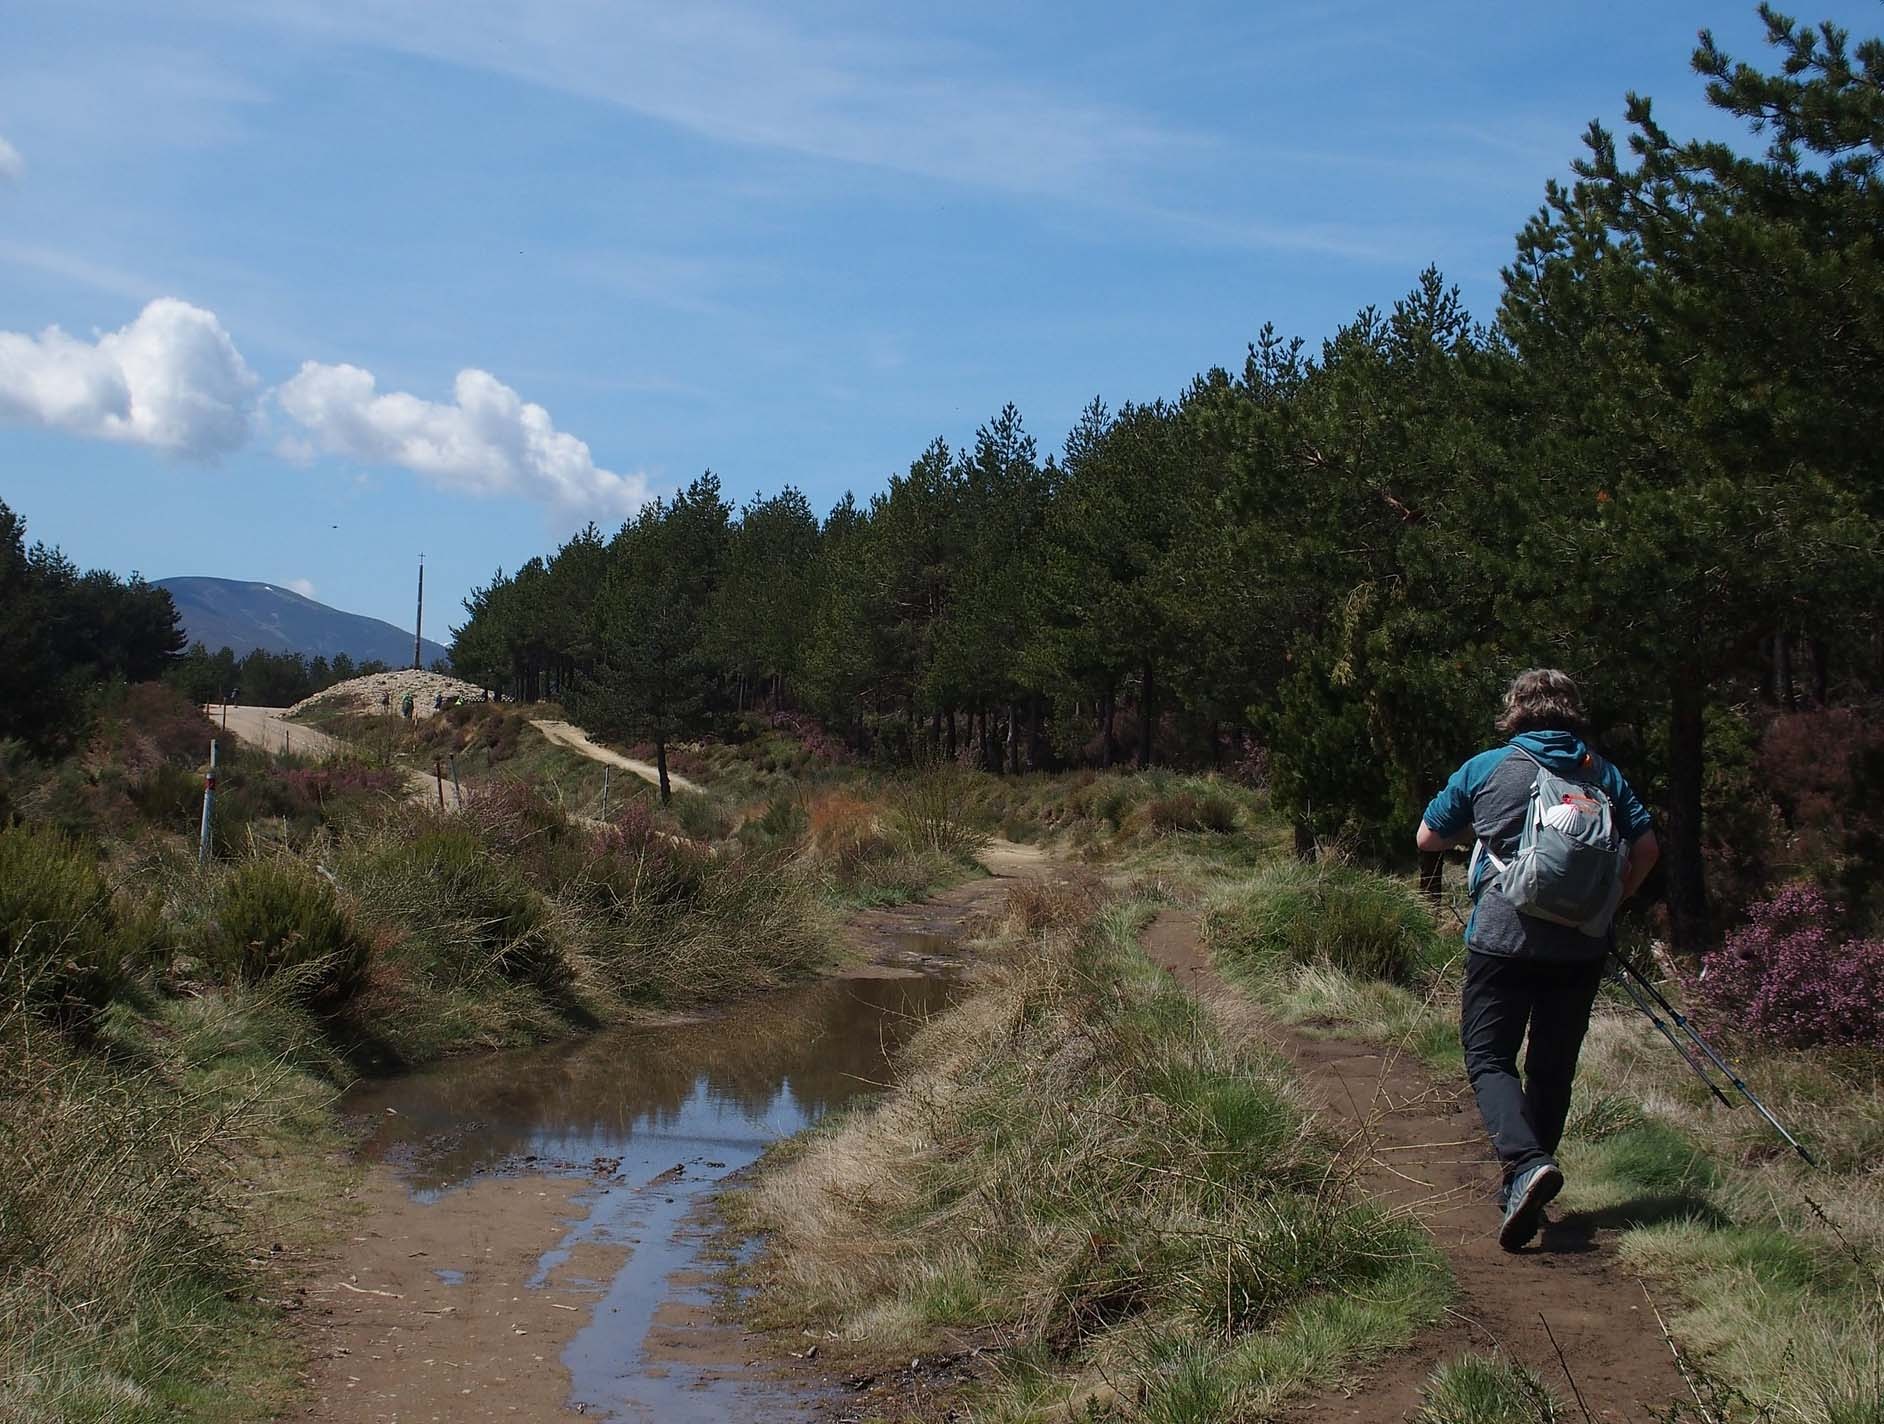 Camino de Santiago Tour - April 29, 2019